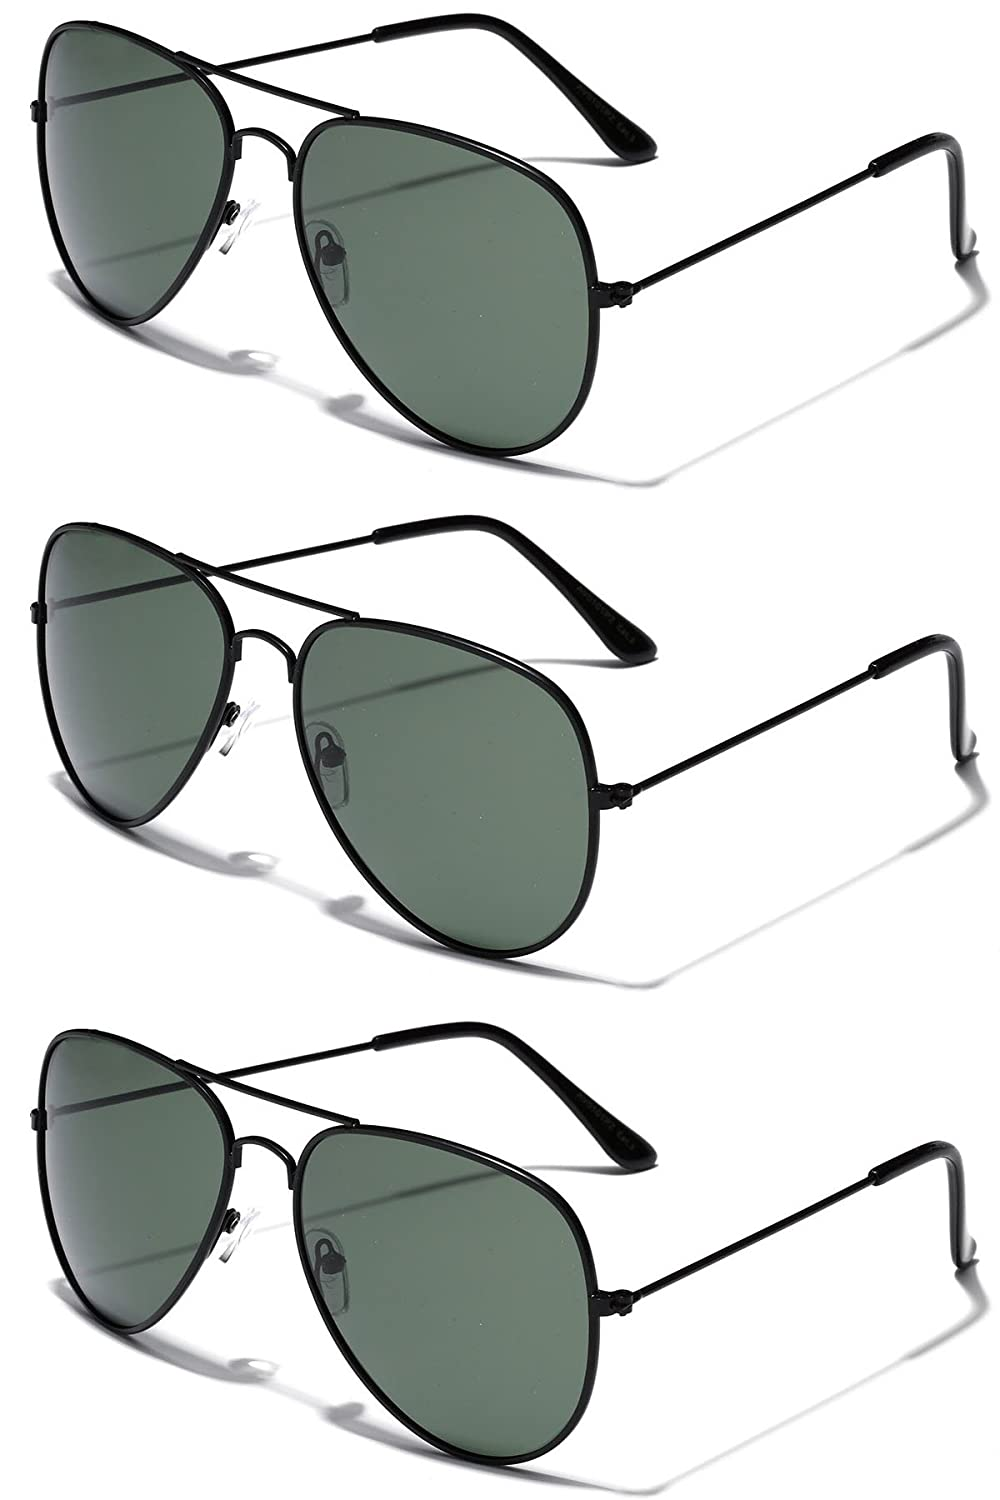 3 Pack Deal - Polarized Classic Full Rim Metal Aviator Sunglasses UV400